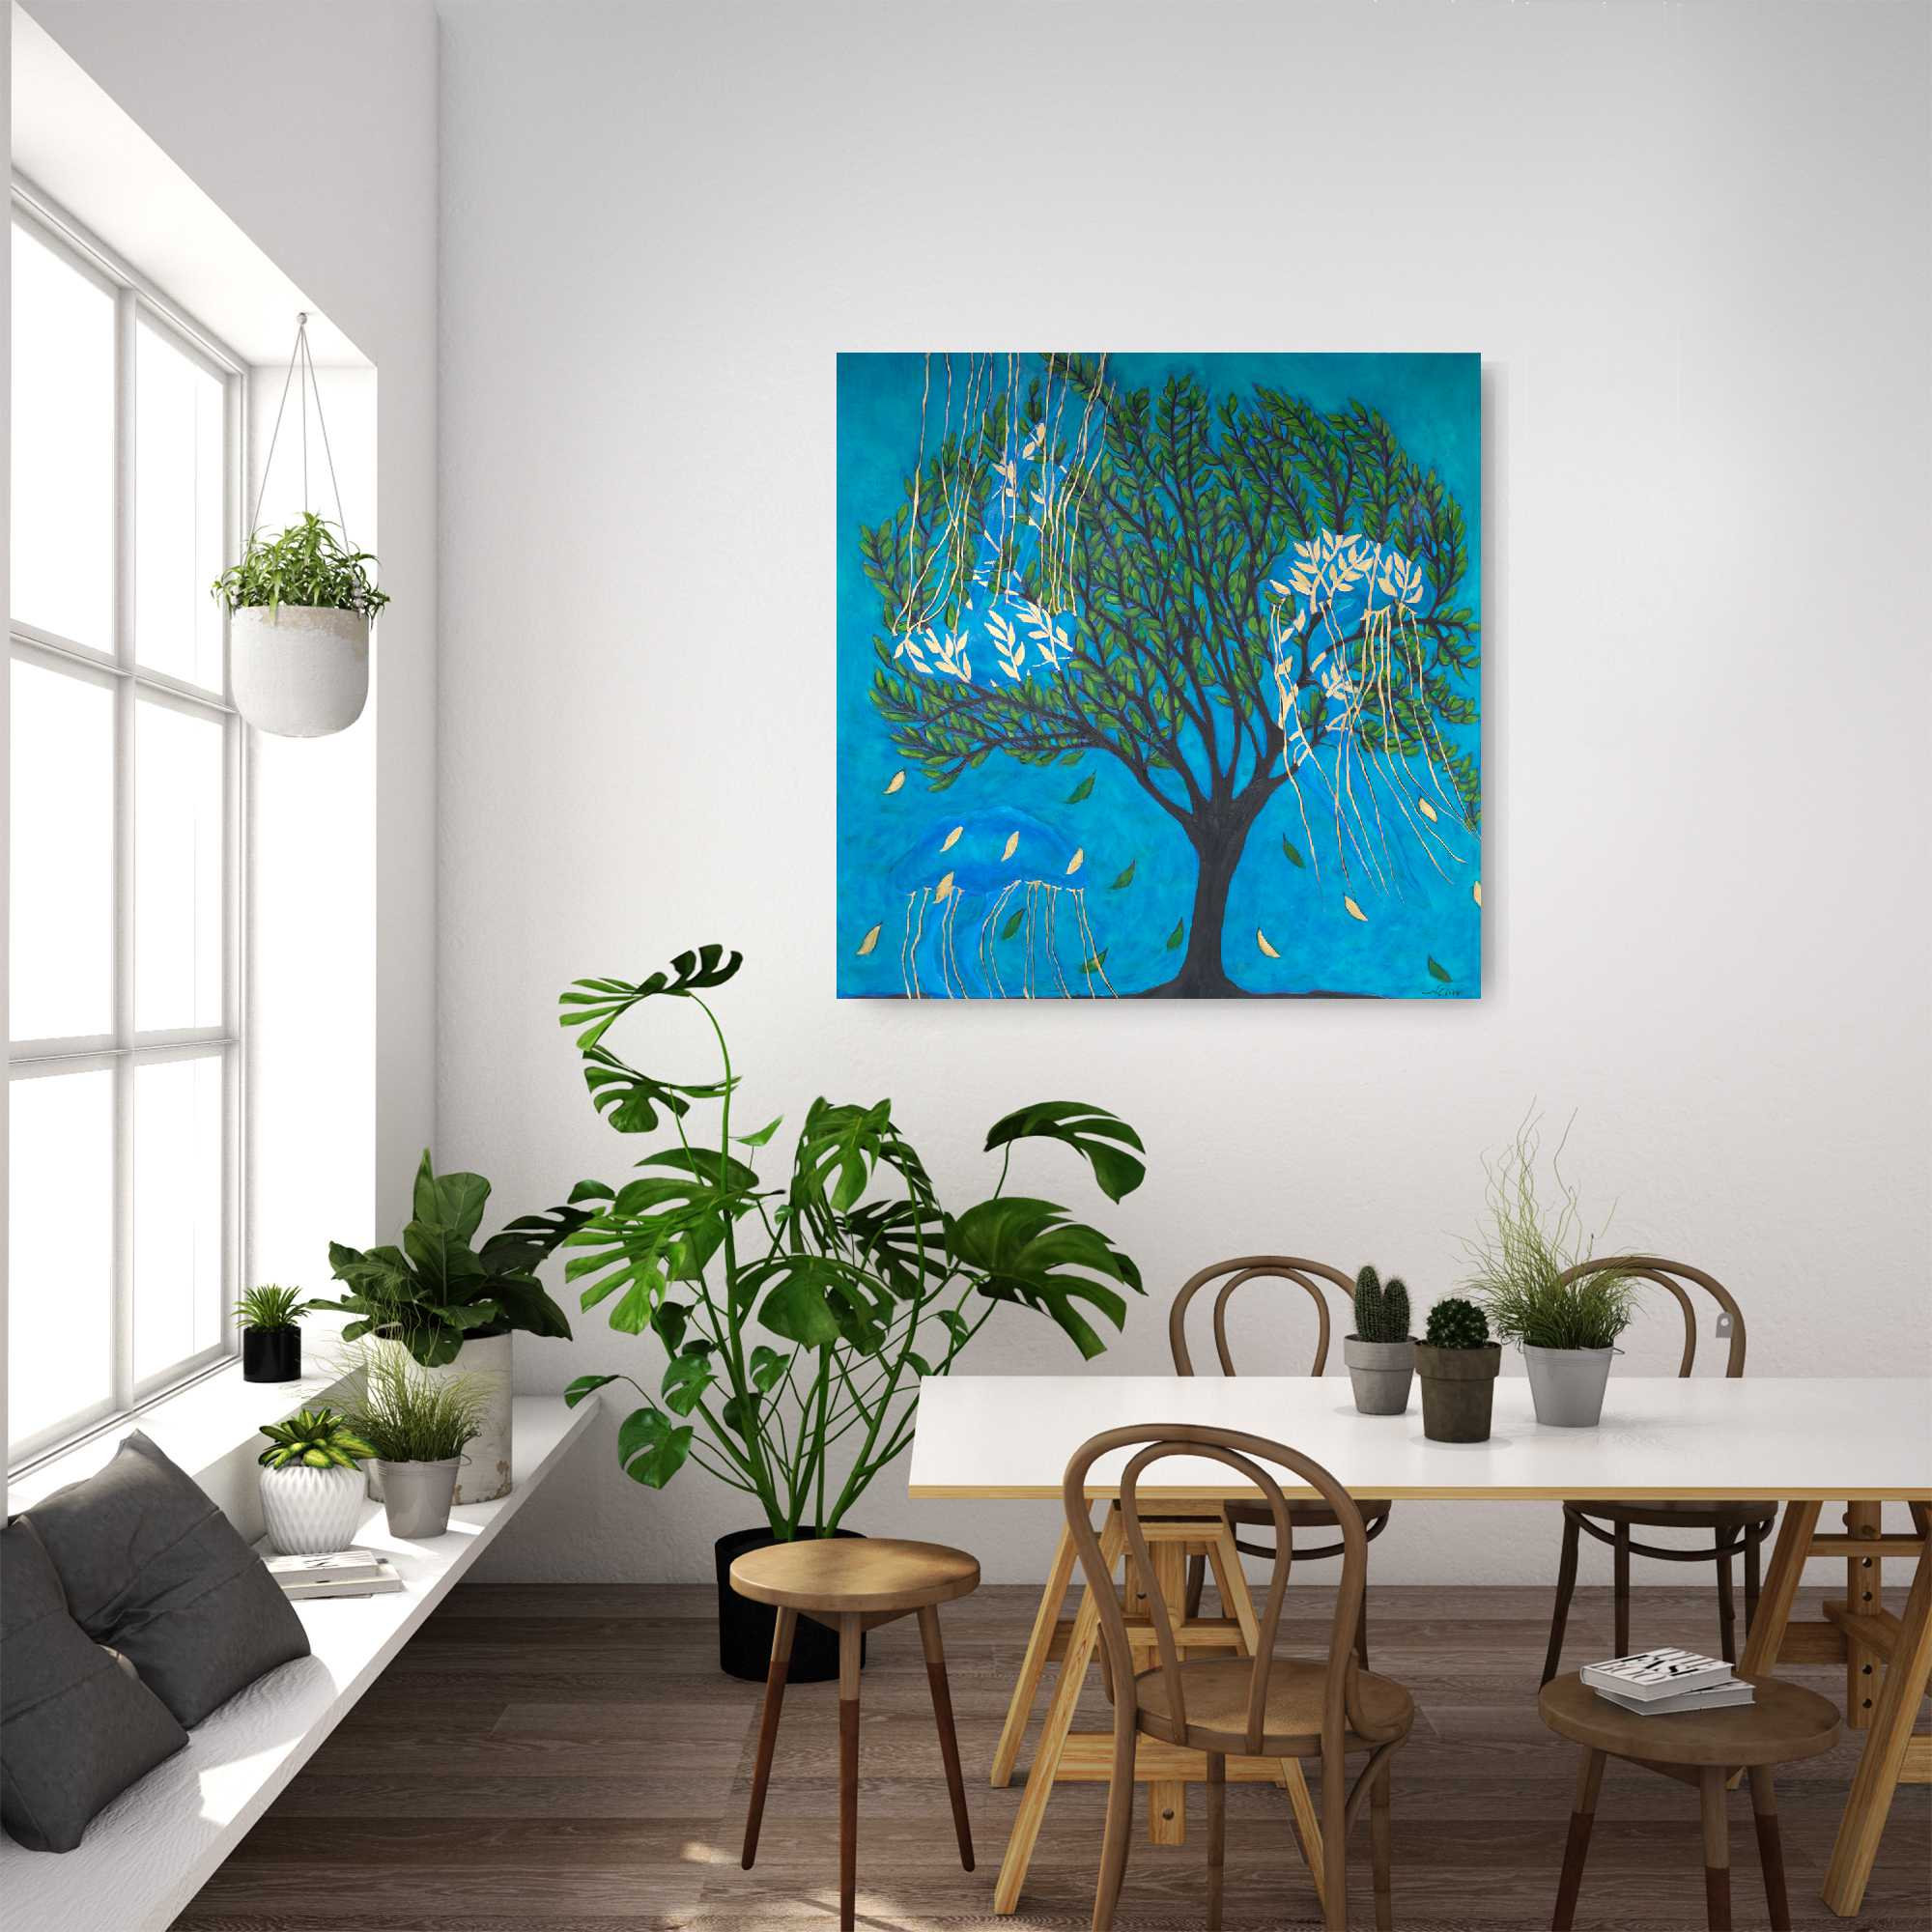 Life of a Tree: Underwater, oil on canvas, 36x36